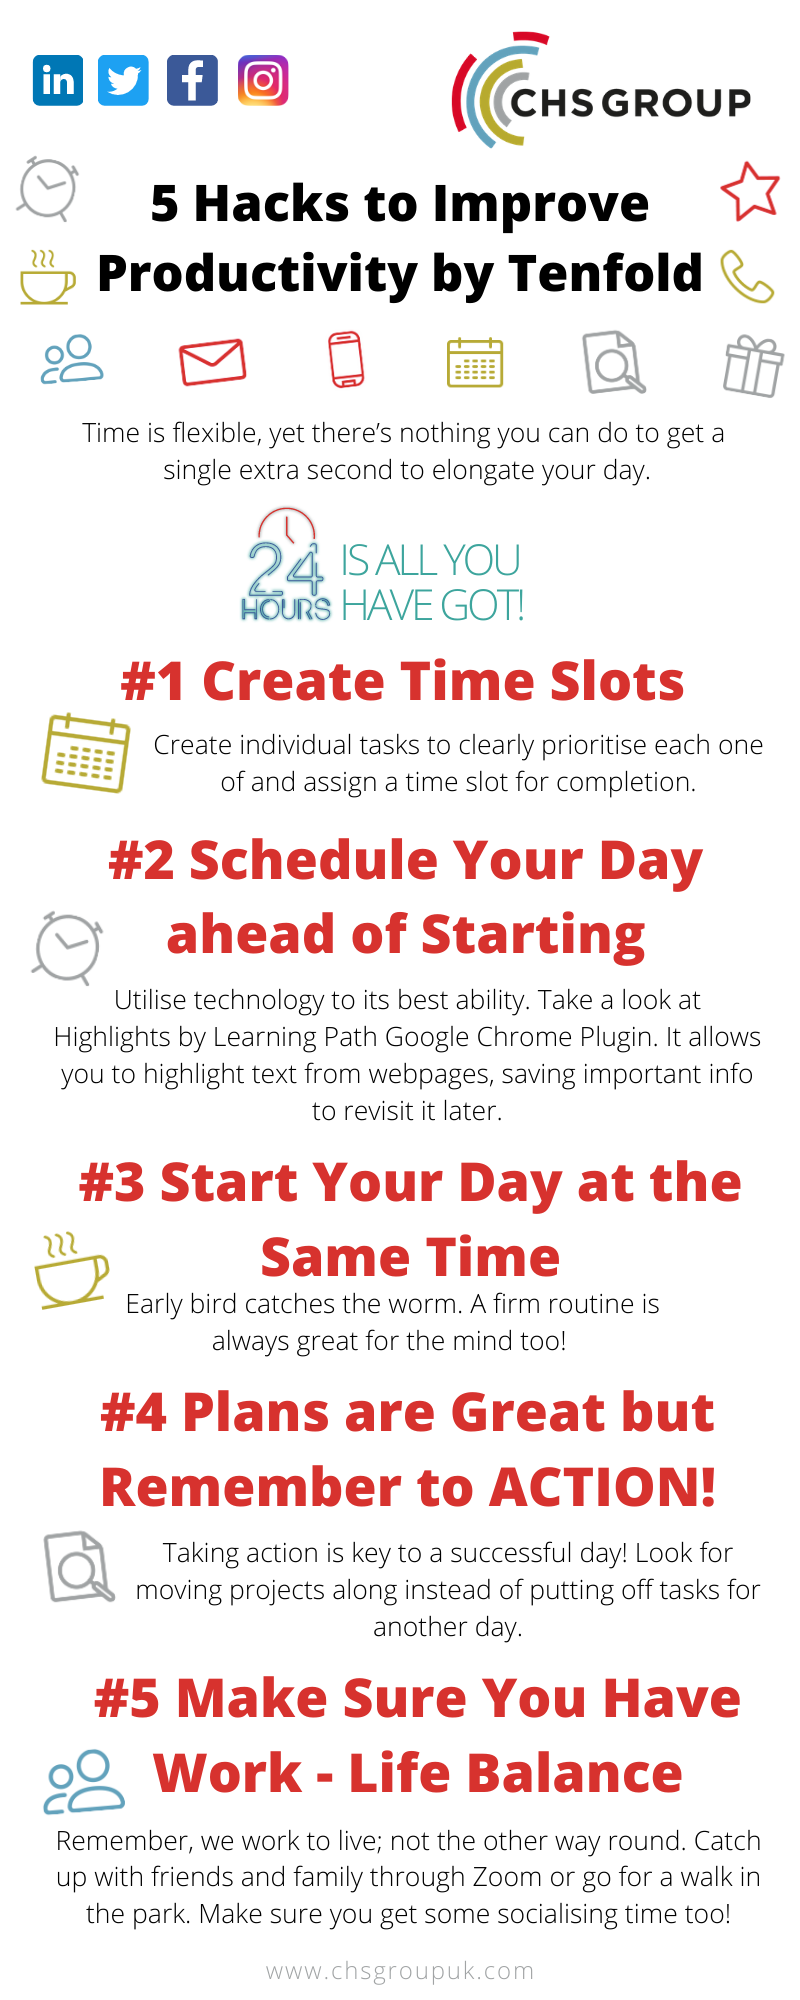 CHS Group Infographic - improve productivity